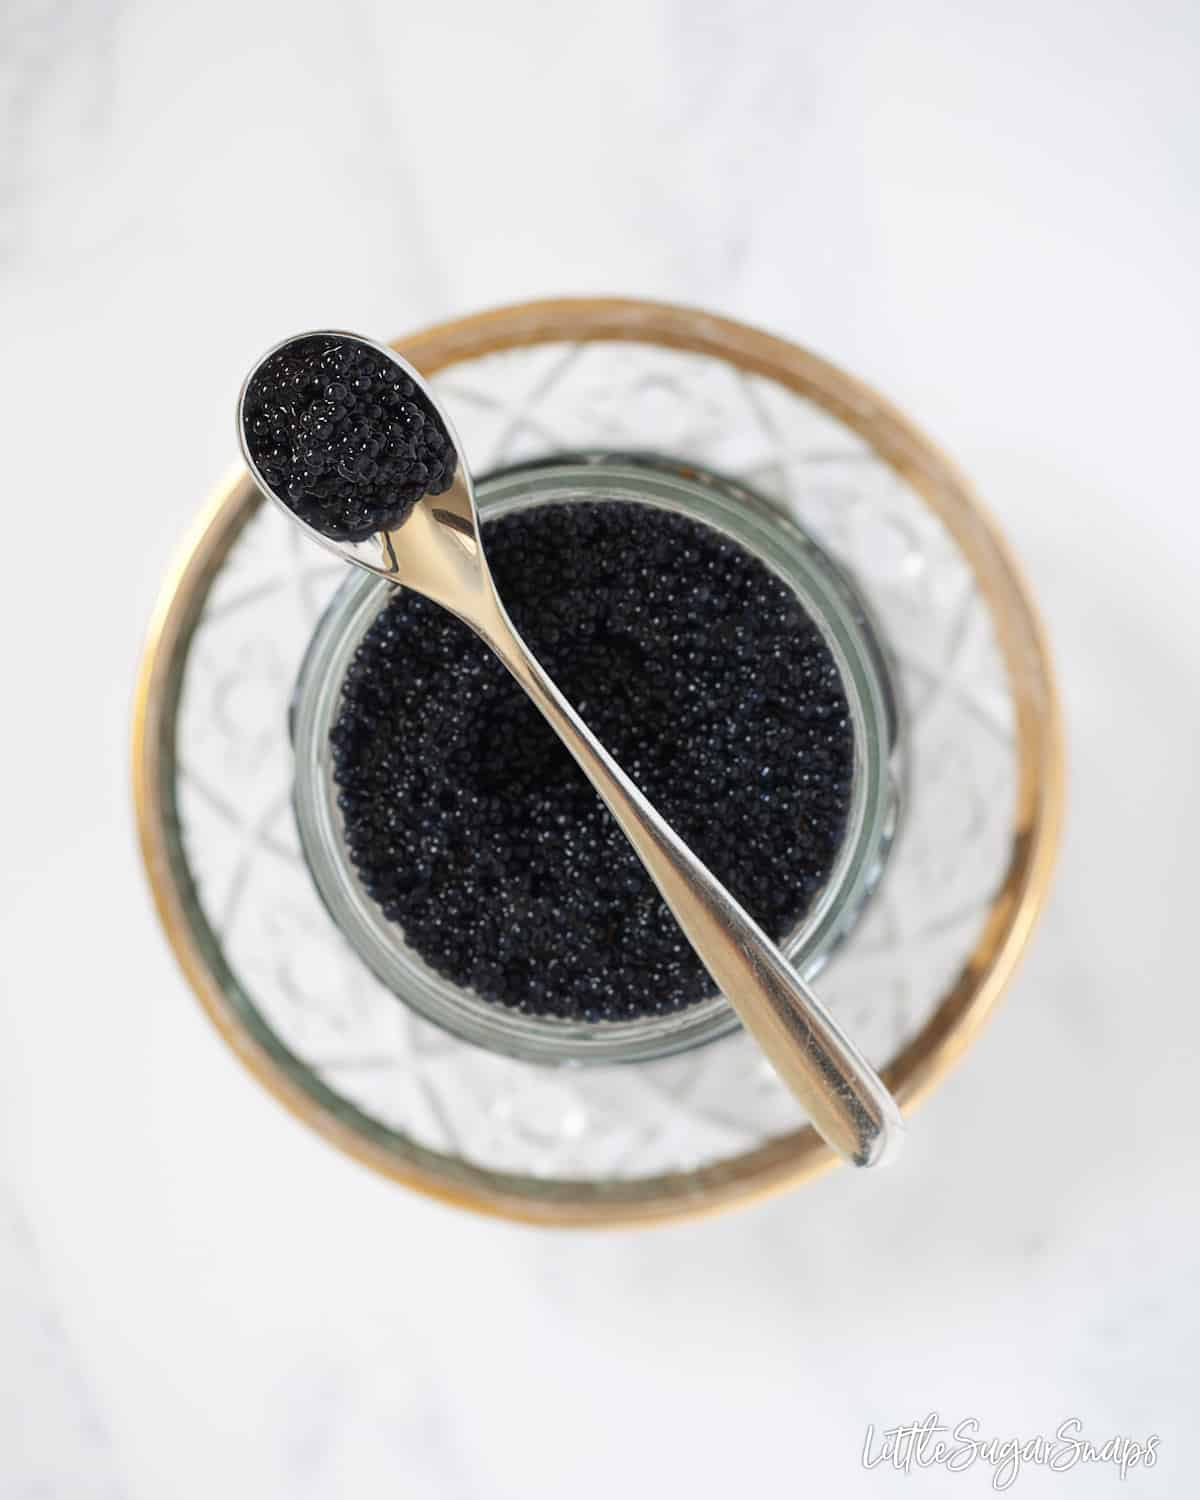 A glass jar of caviar on a pretty plate. There is a small spoon resting across the jar with some caviar on it